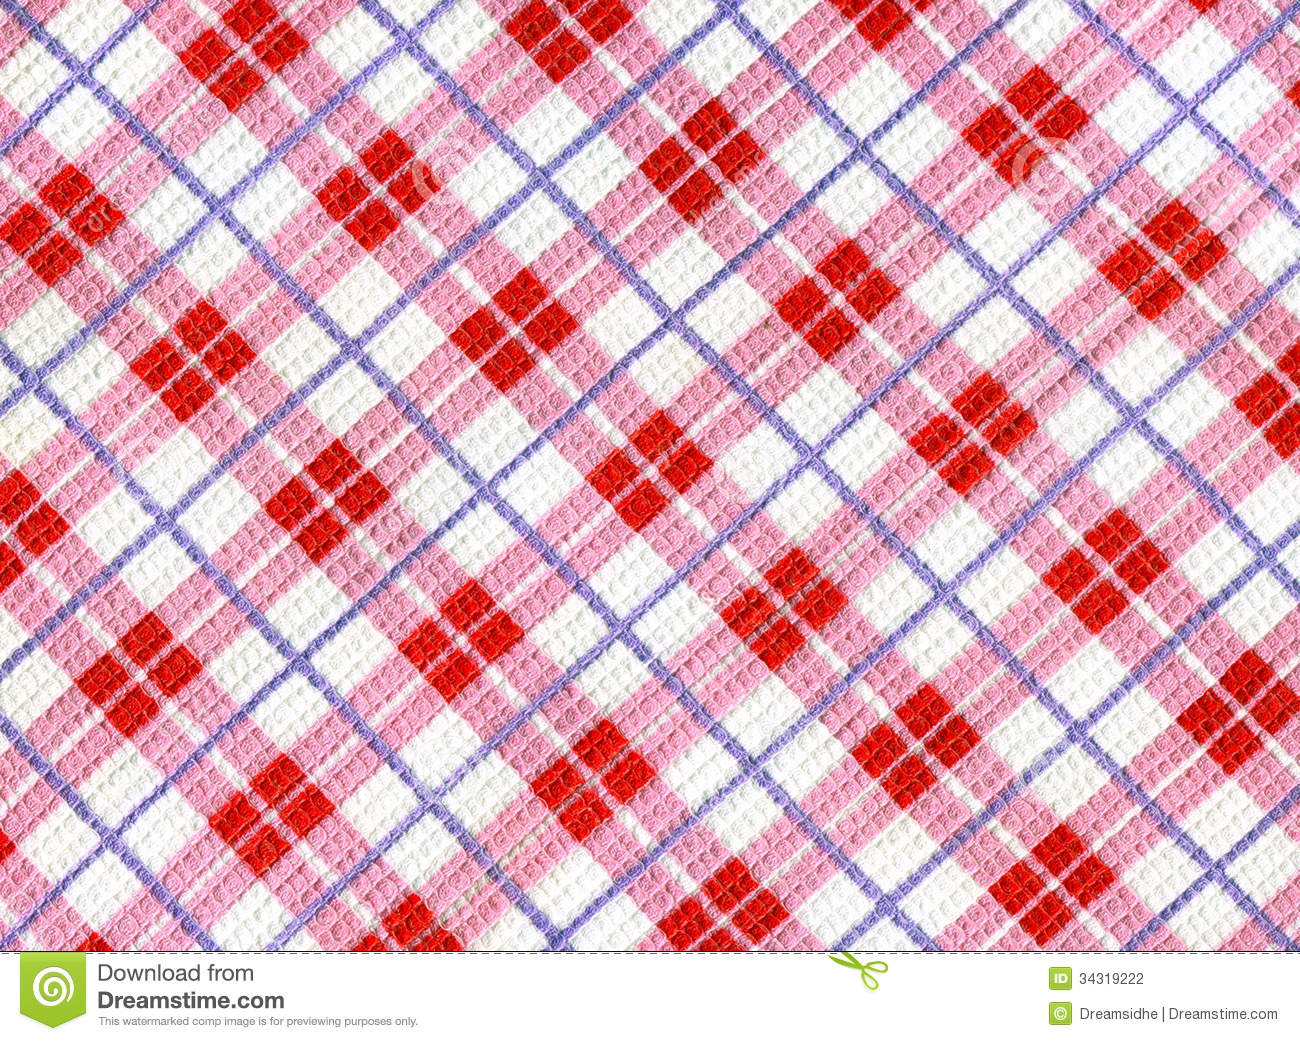 Fond carreaux de torchon photographie stock image for Magasin le torchon a carreaux